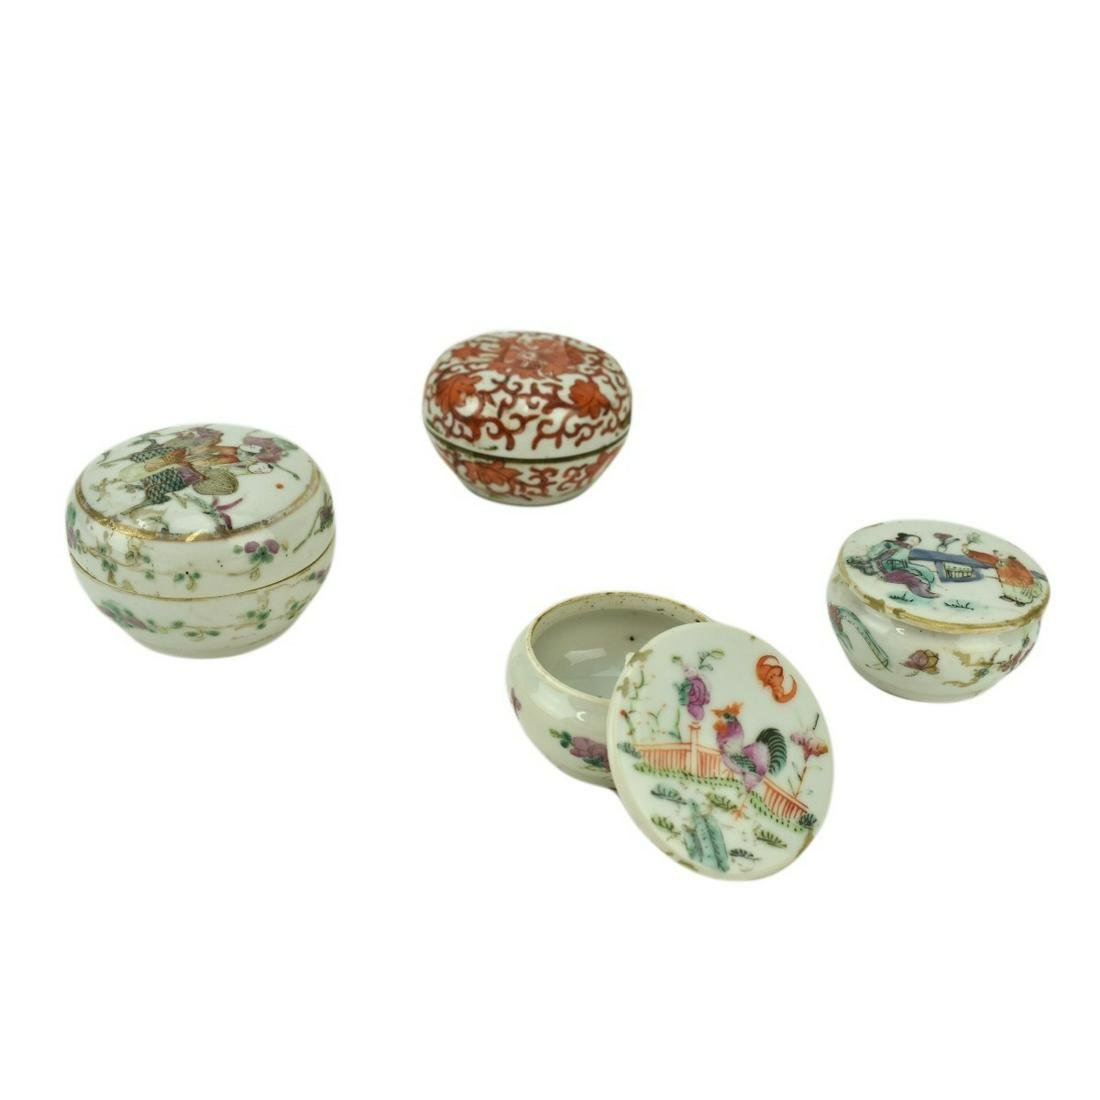 Four (4) Antique Chinese Miniature Covered Boxes